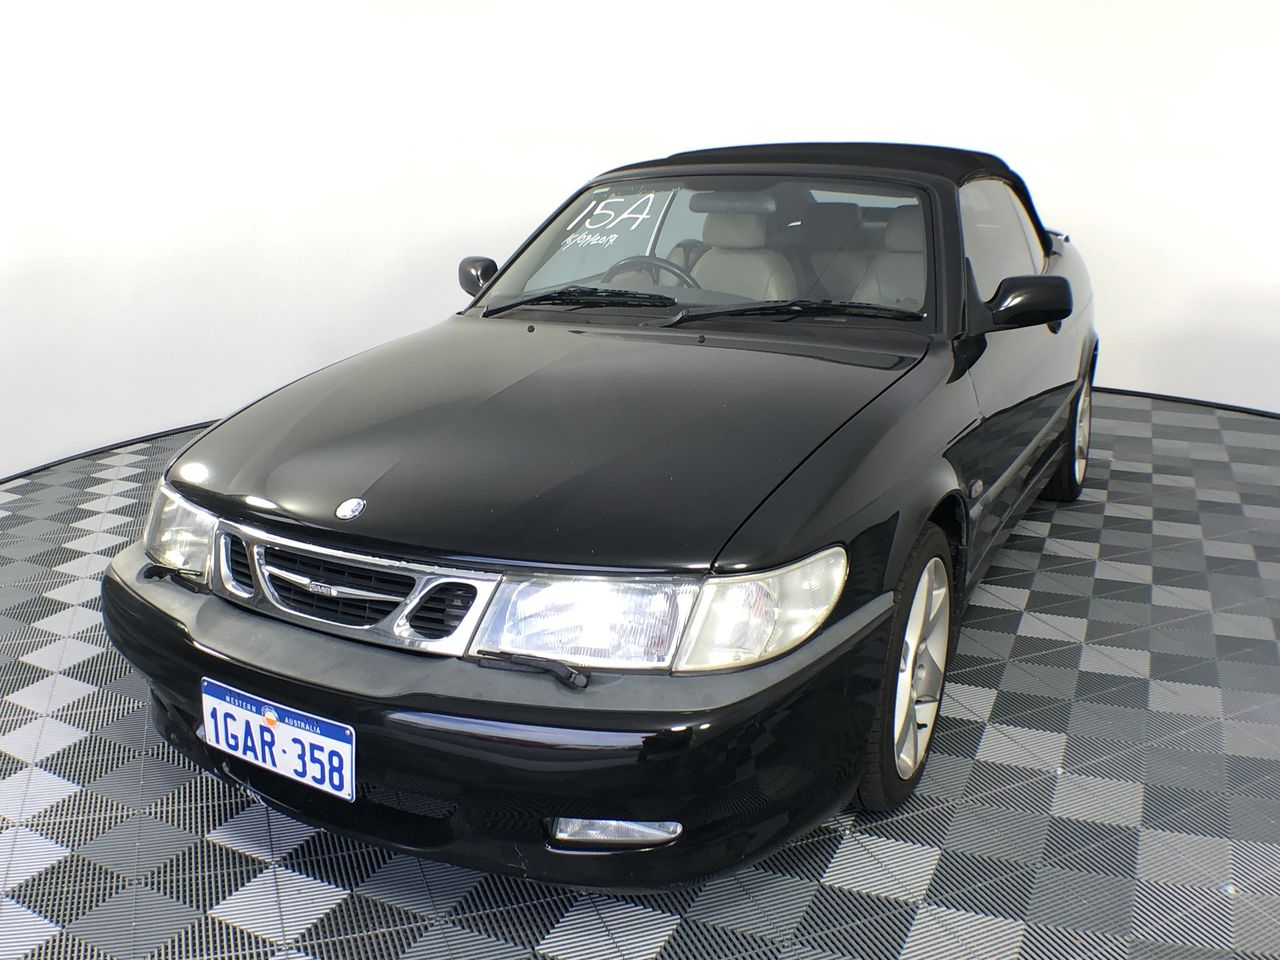 2003 Saab 9-3 TURBO 2.0t Automatic Convertible